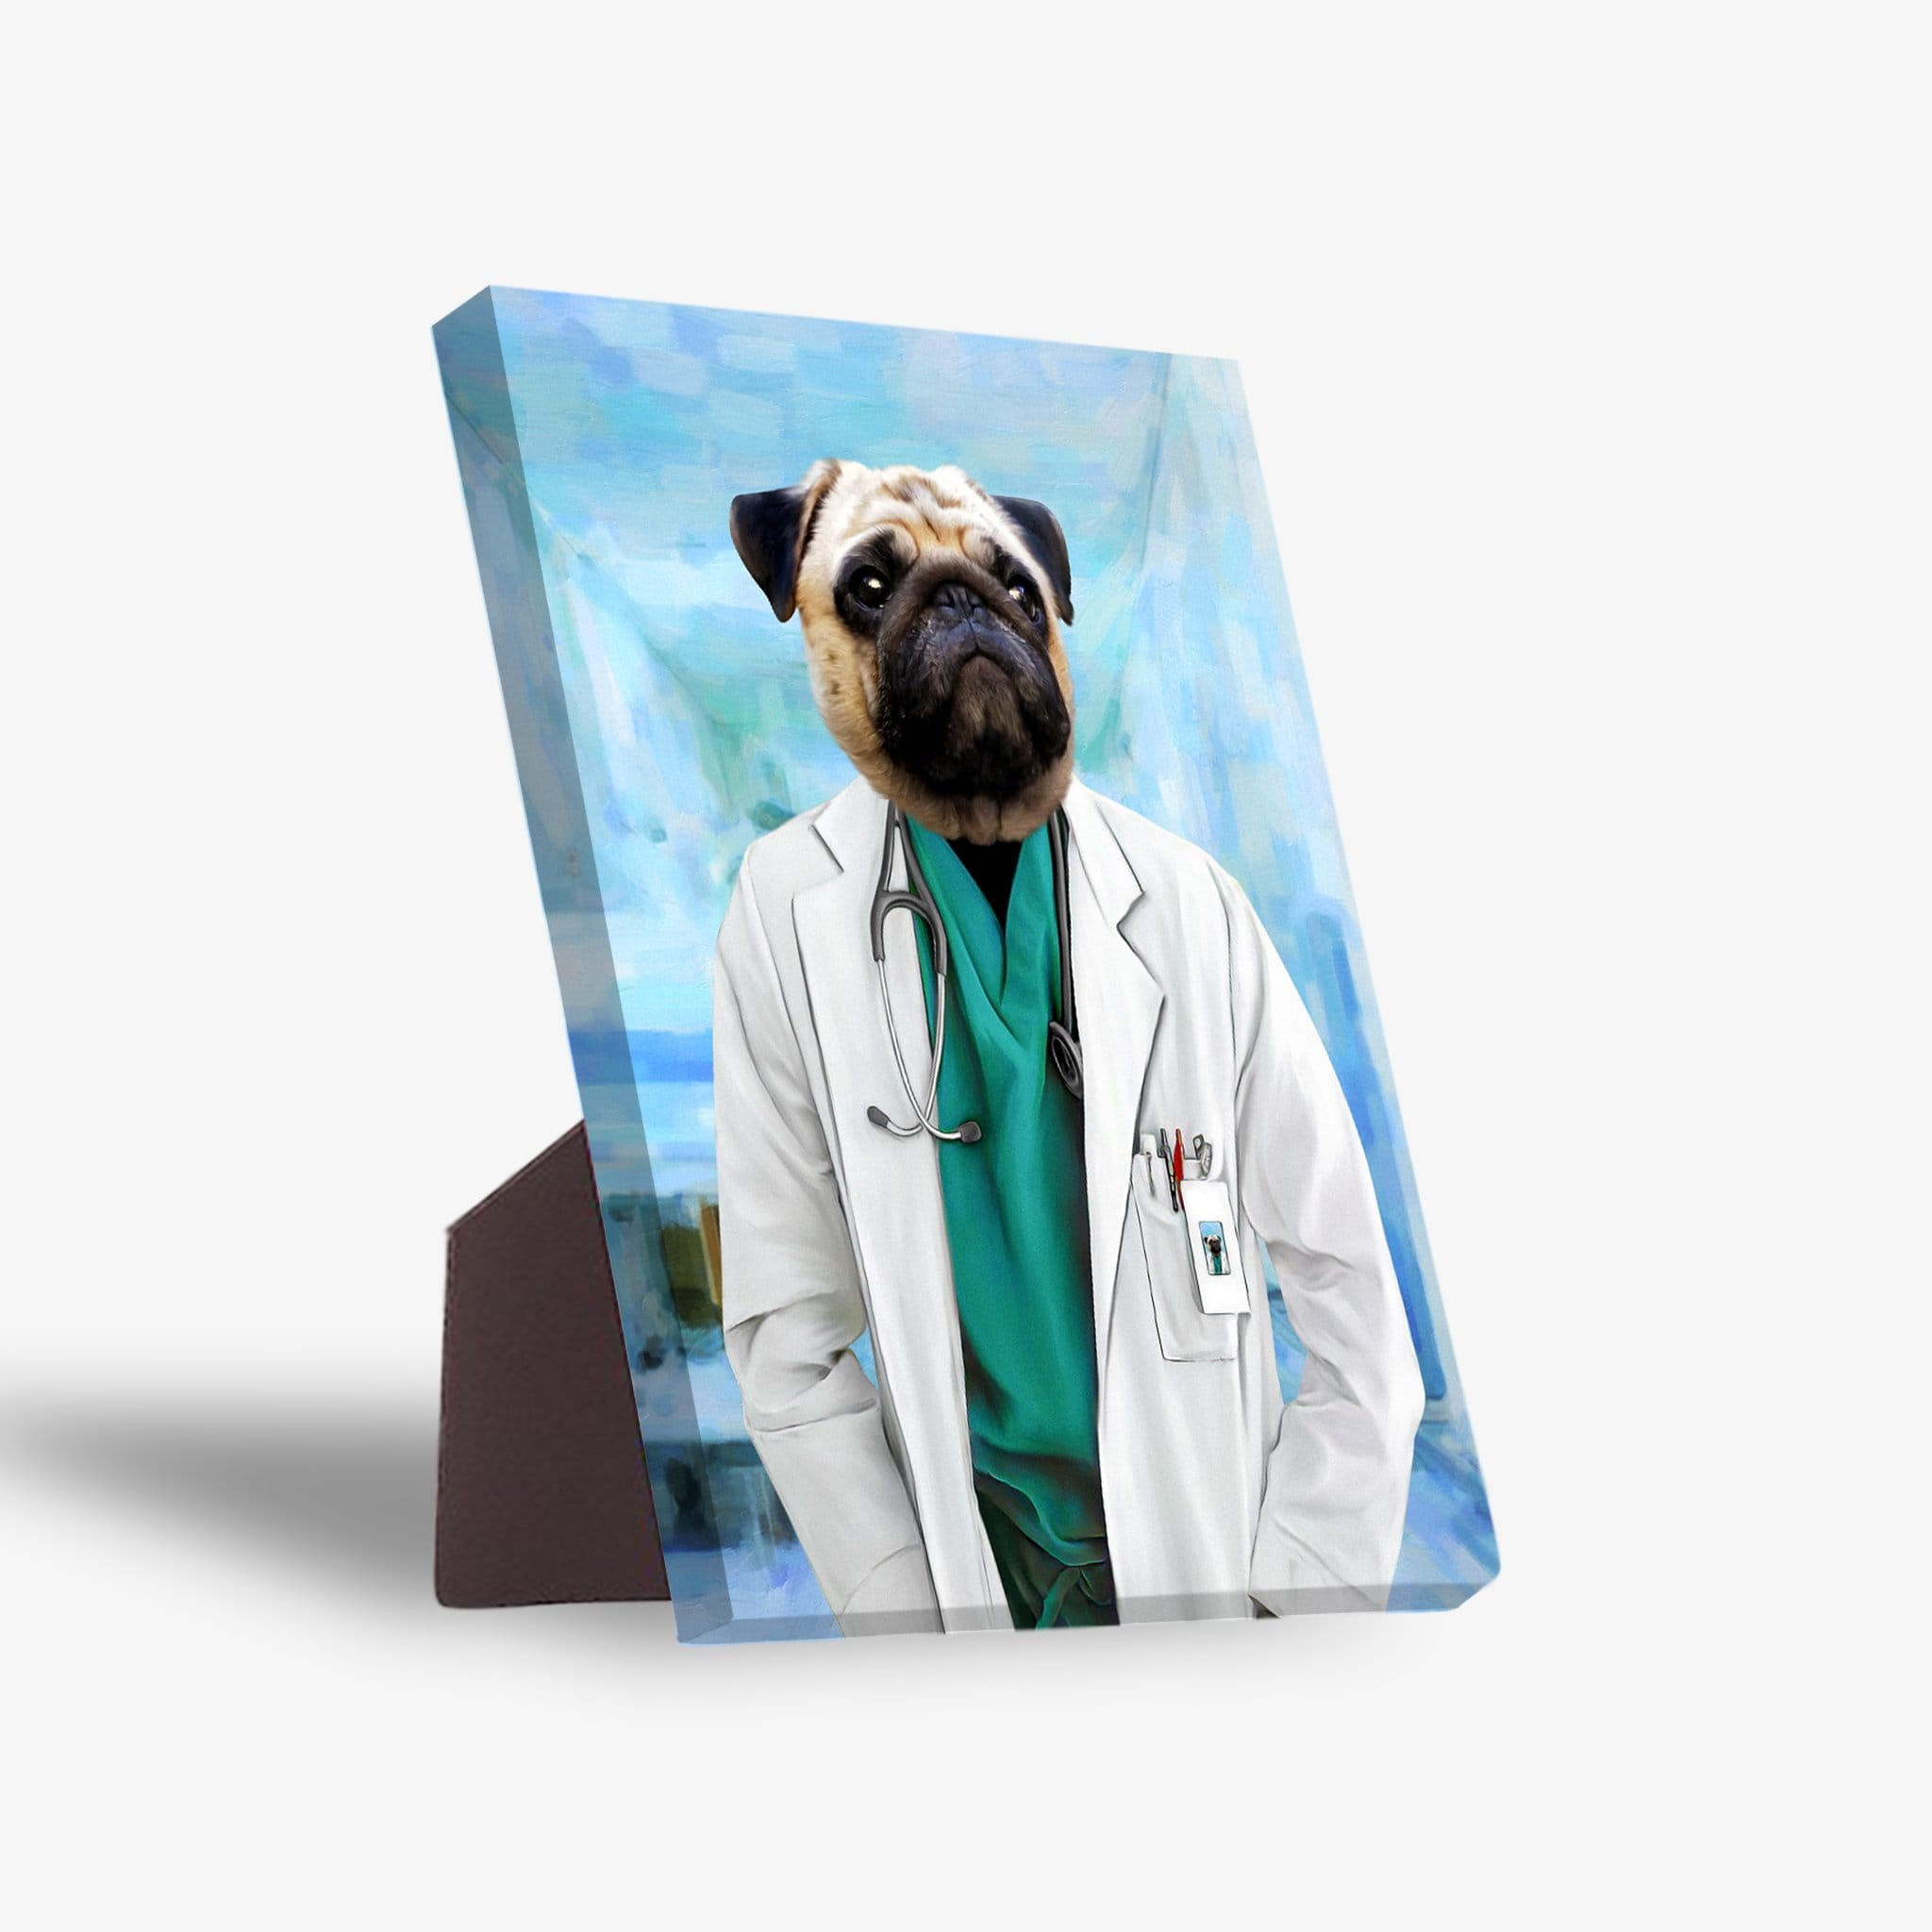 'The Doctor' Personalized Pet Standing Canvas